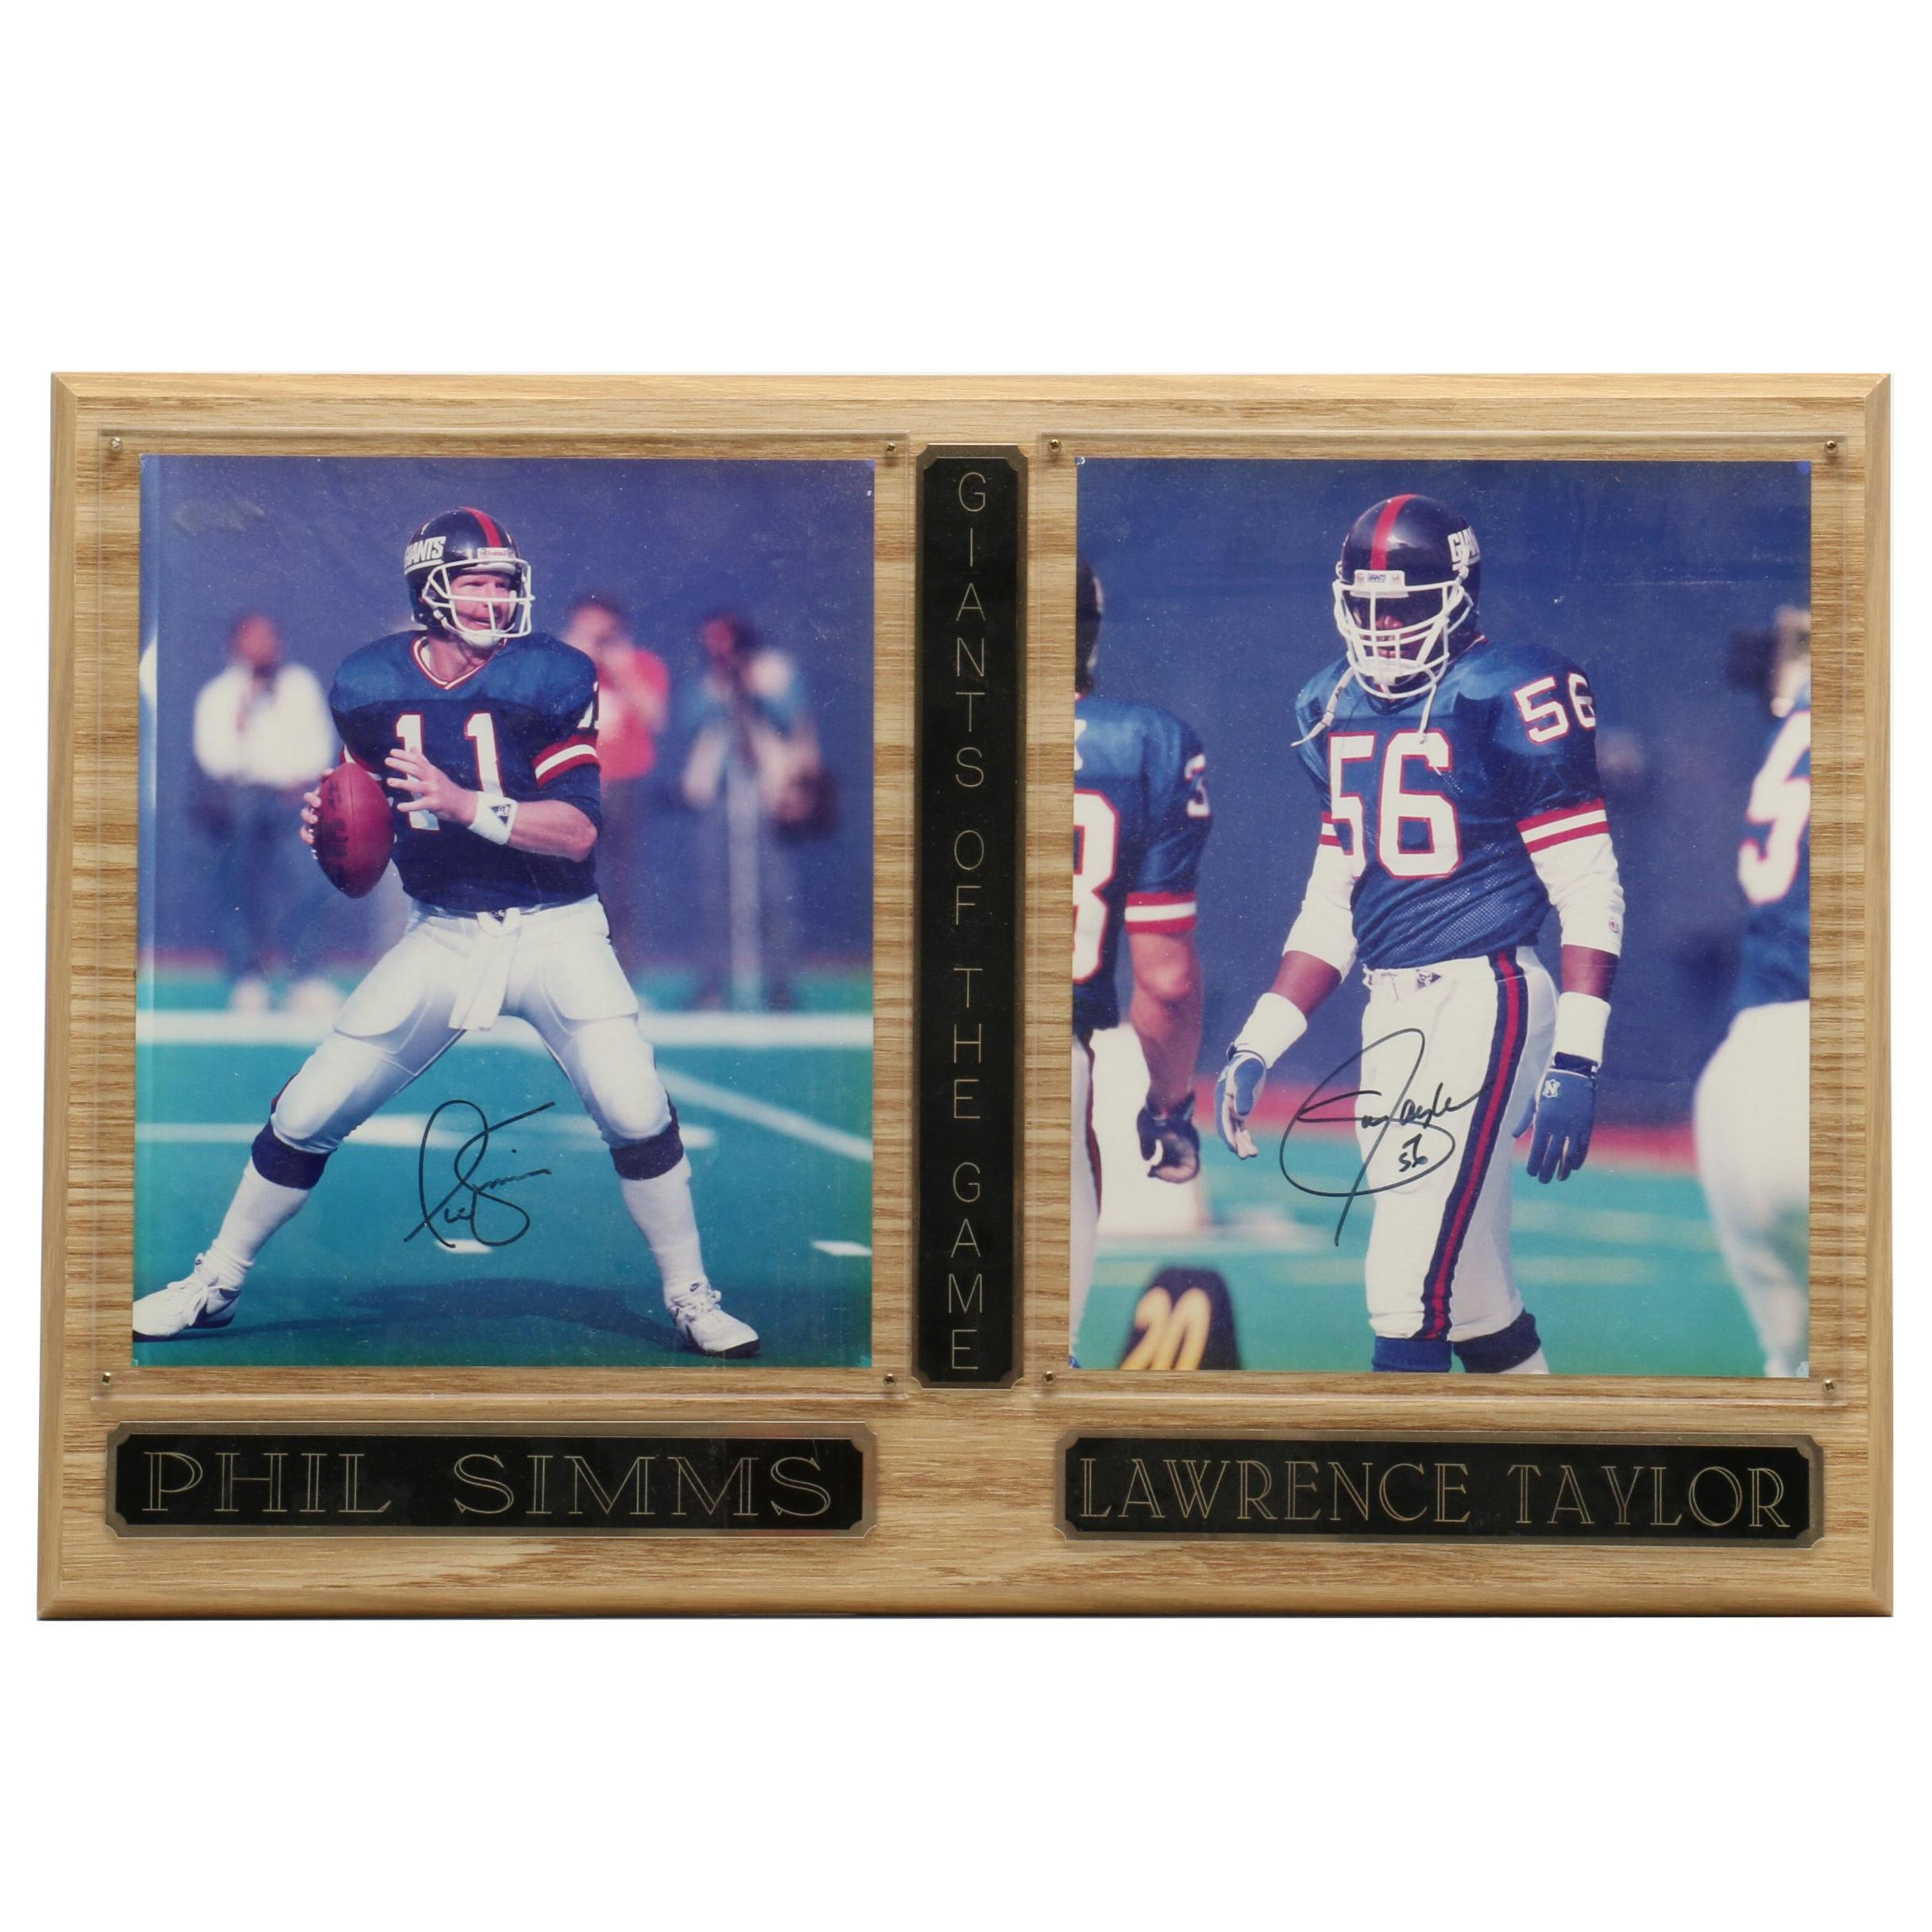 Phil Simms and Lawrence Taylor Signed Display  COA